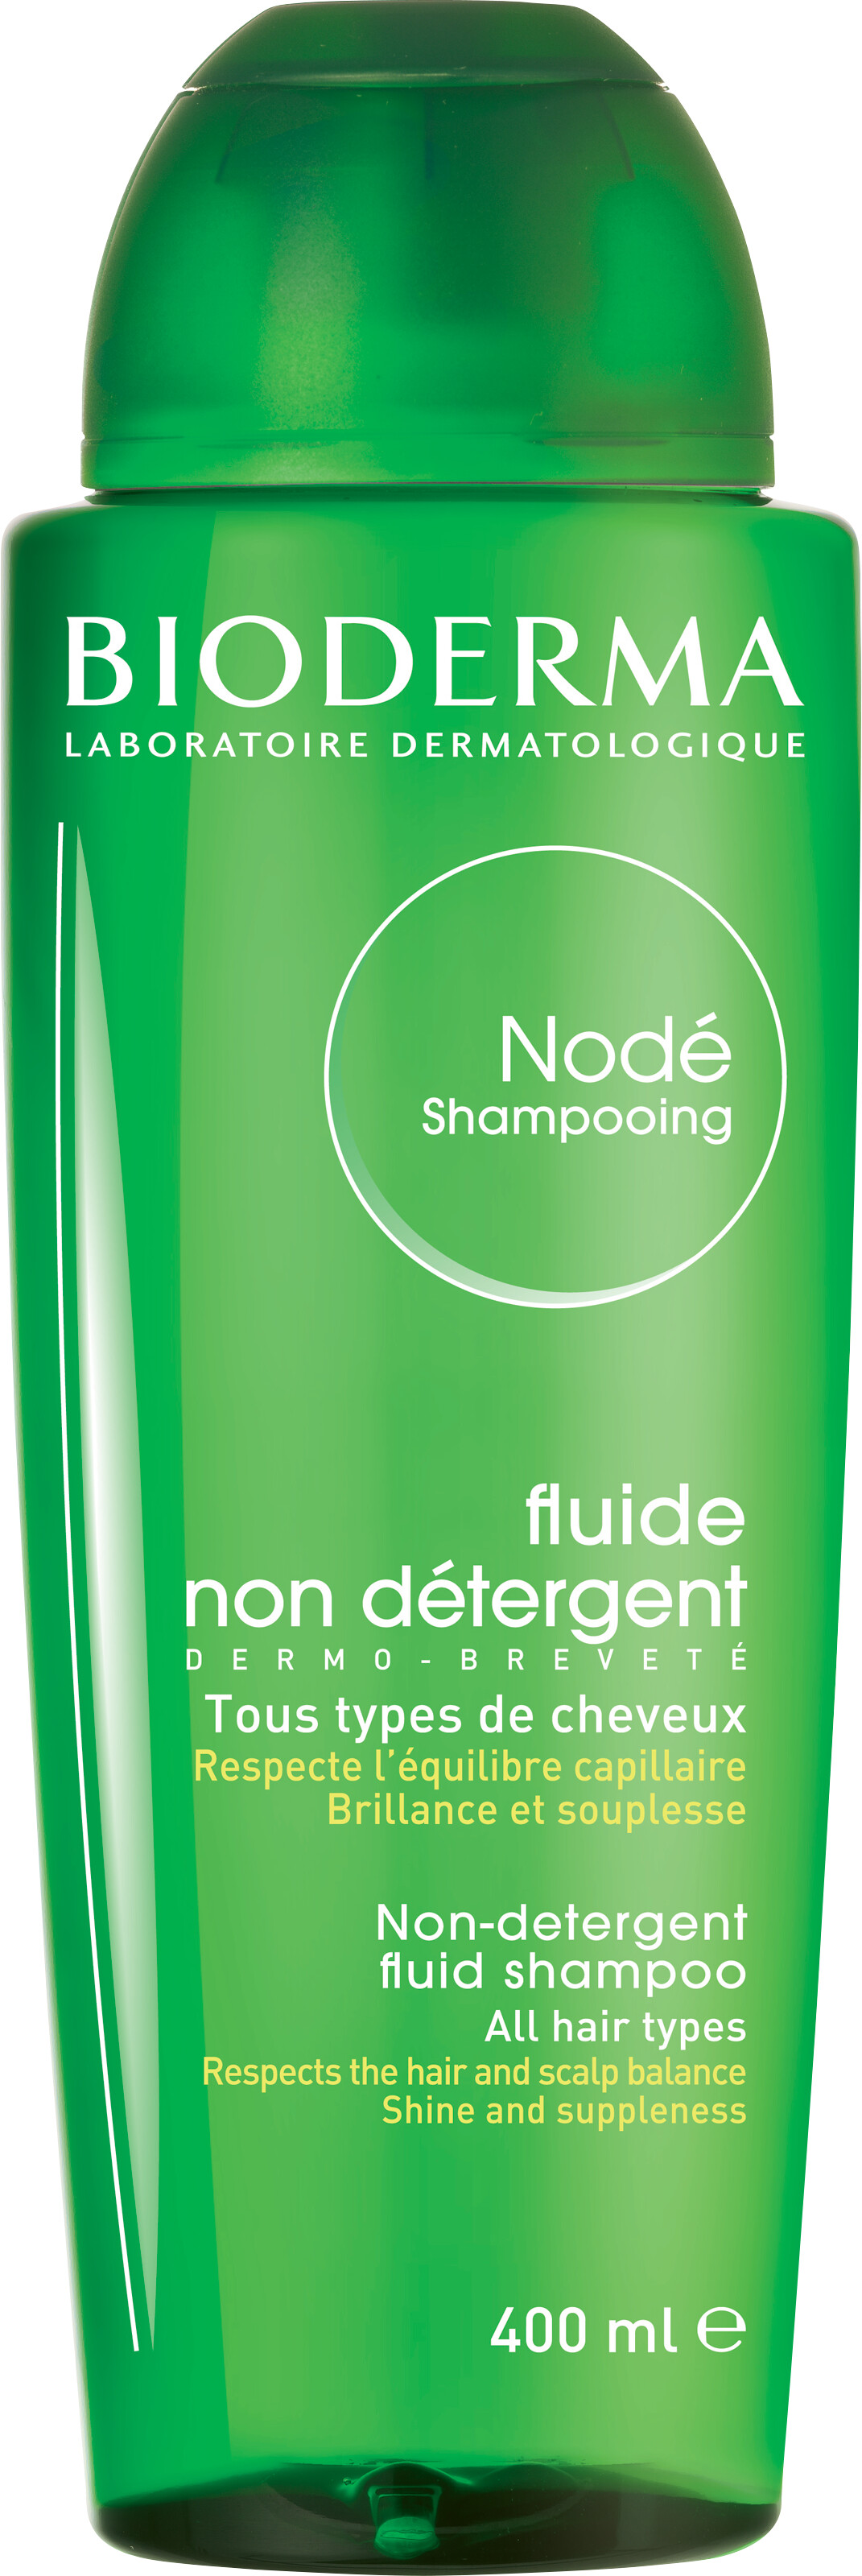 Bioderma Node Fluid Shampoo 400ml